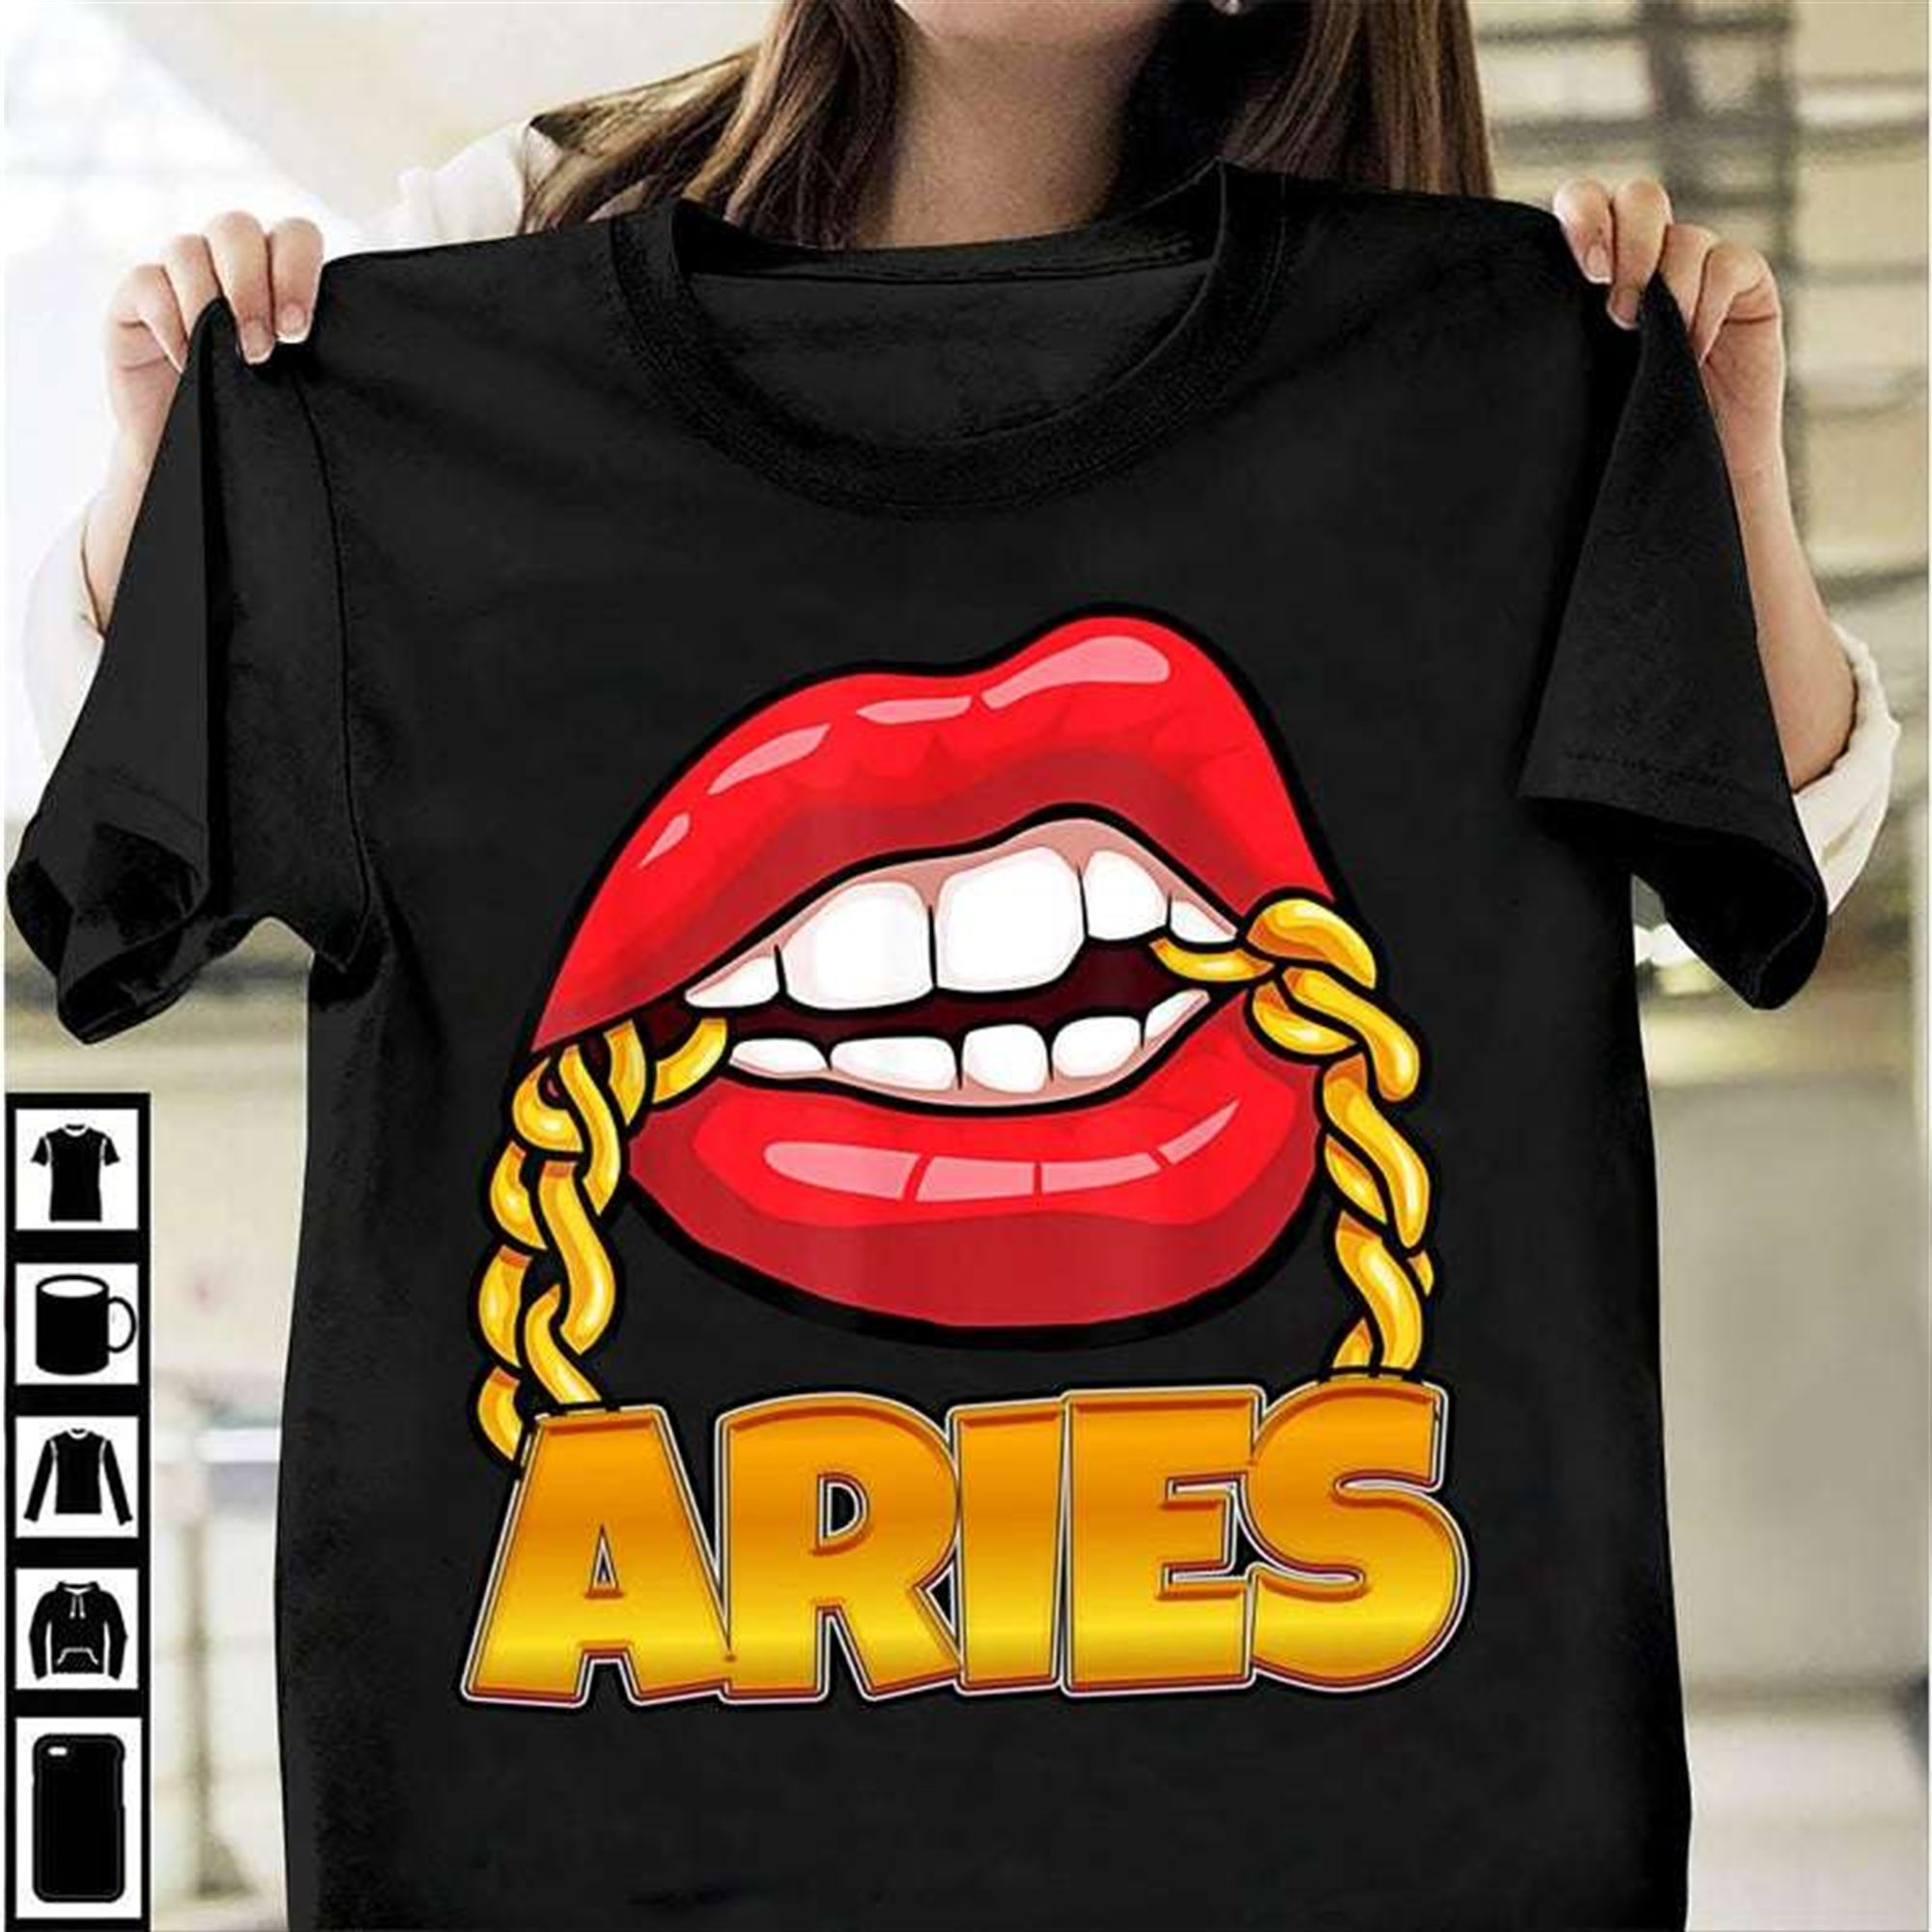 Zodiac Aries The Strongest Aries T-shirt Plus Size Up To 5x